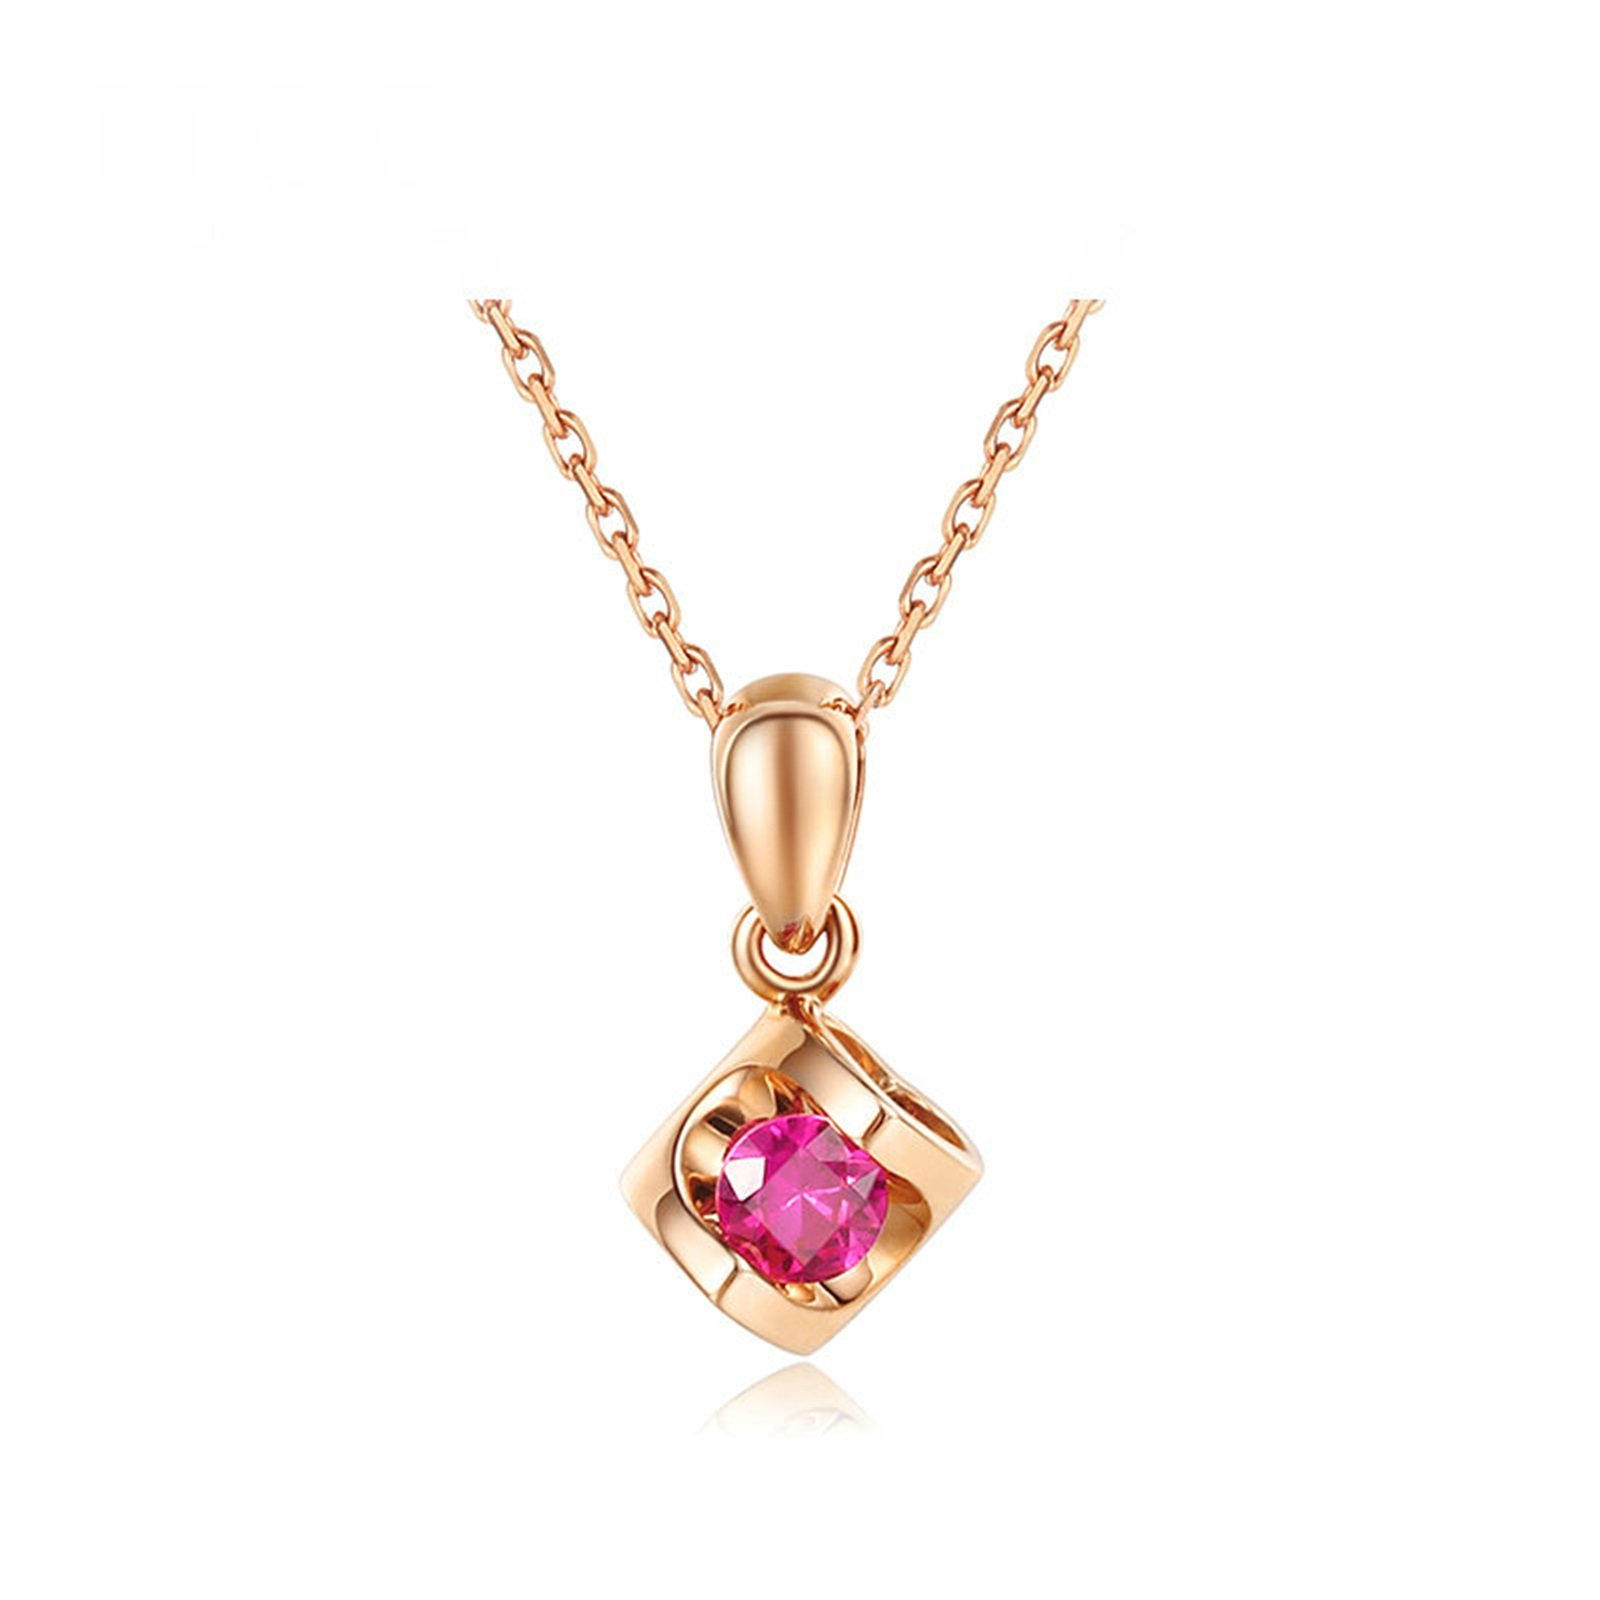 Daesar 18K Gold Necklace For Women Hollow Heart Cubic Zirconia Pendant Necklace Rose Gold Length: 40CM